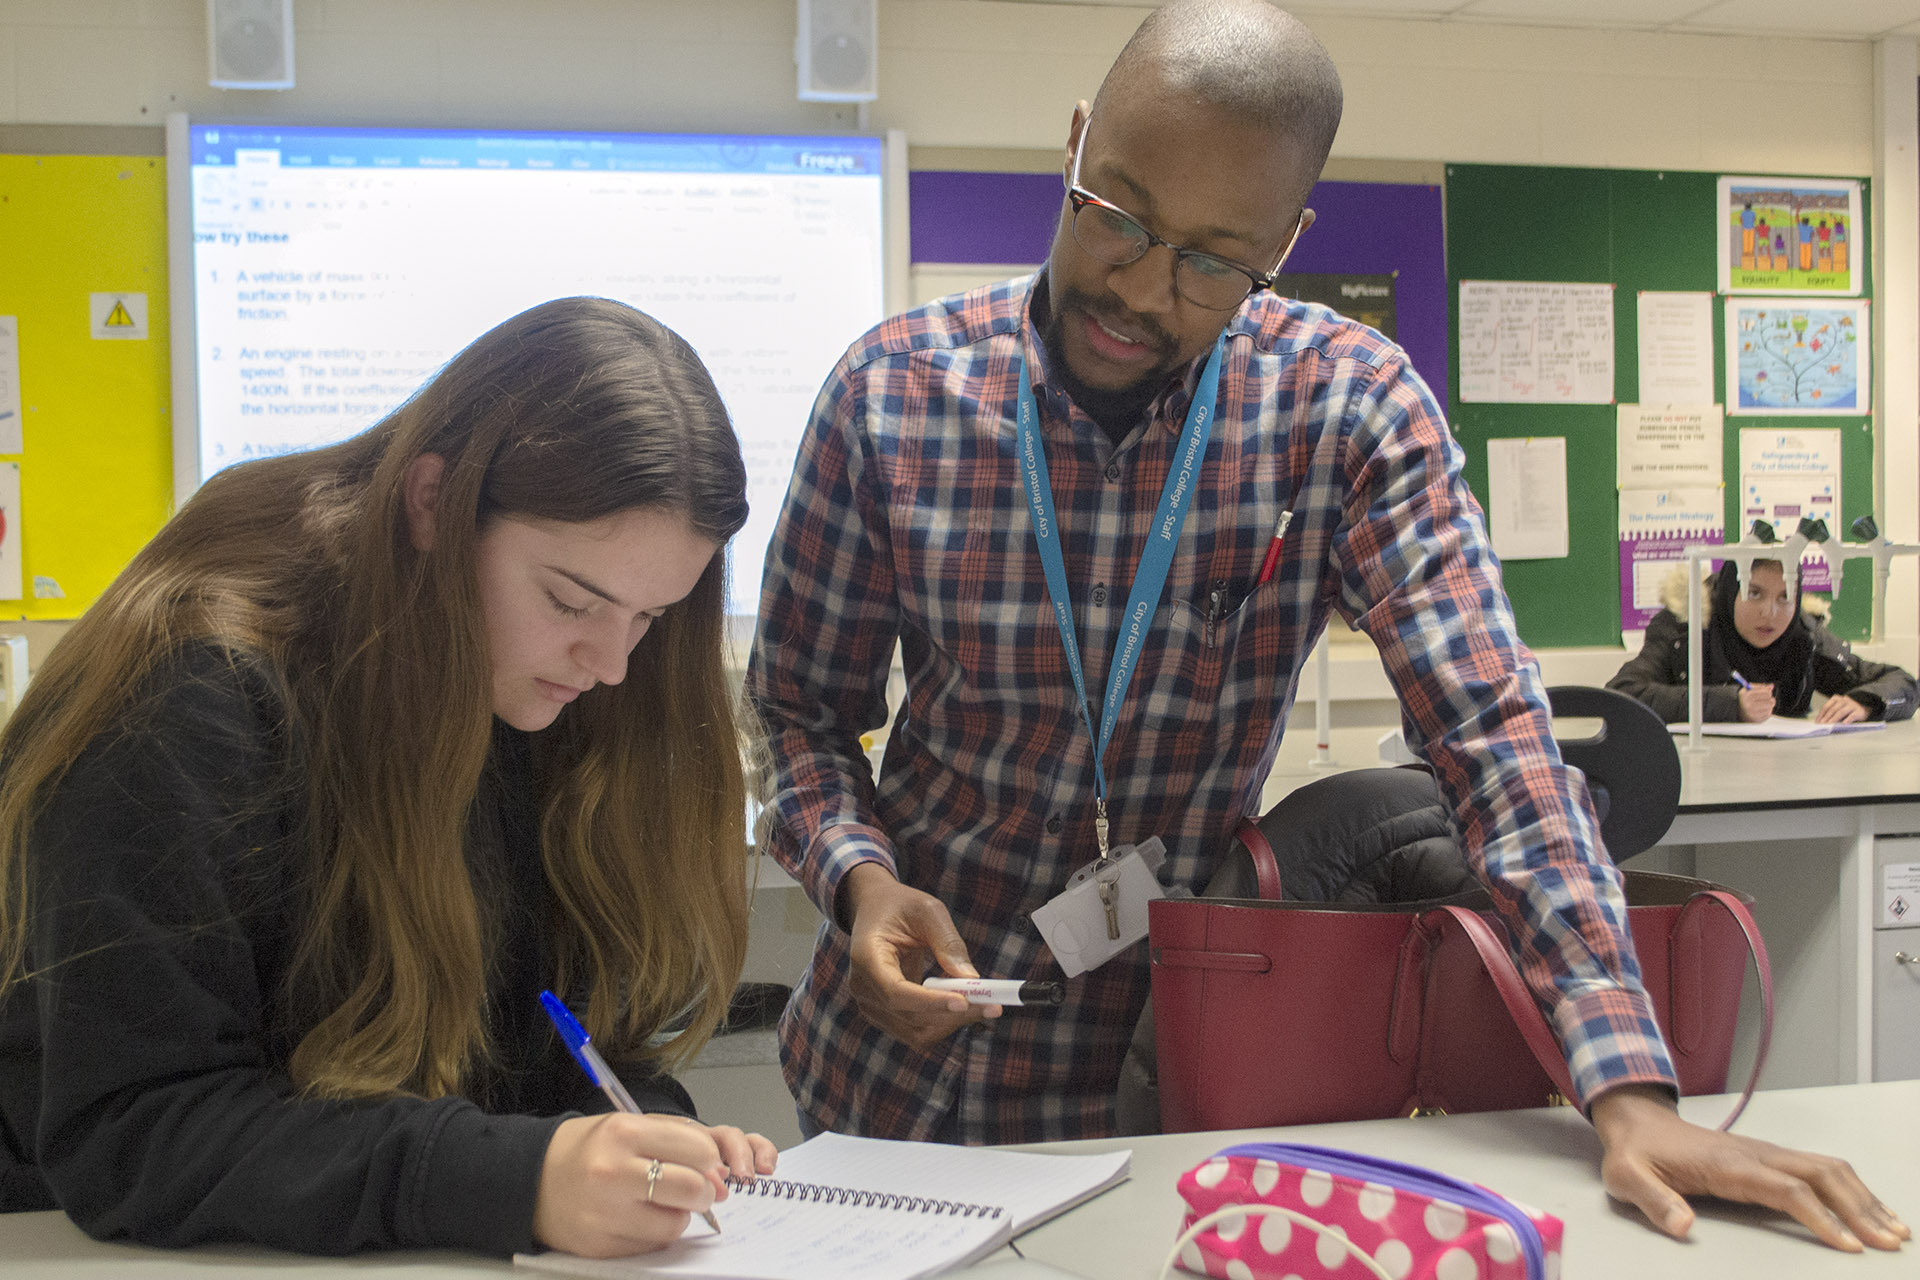 Forensic Since - Student & tutor discussing work